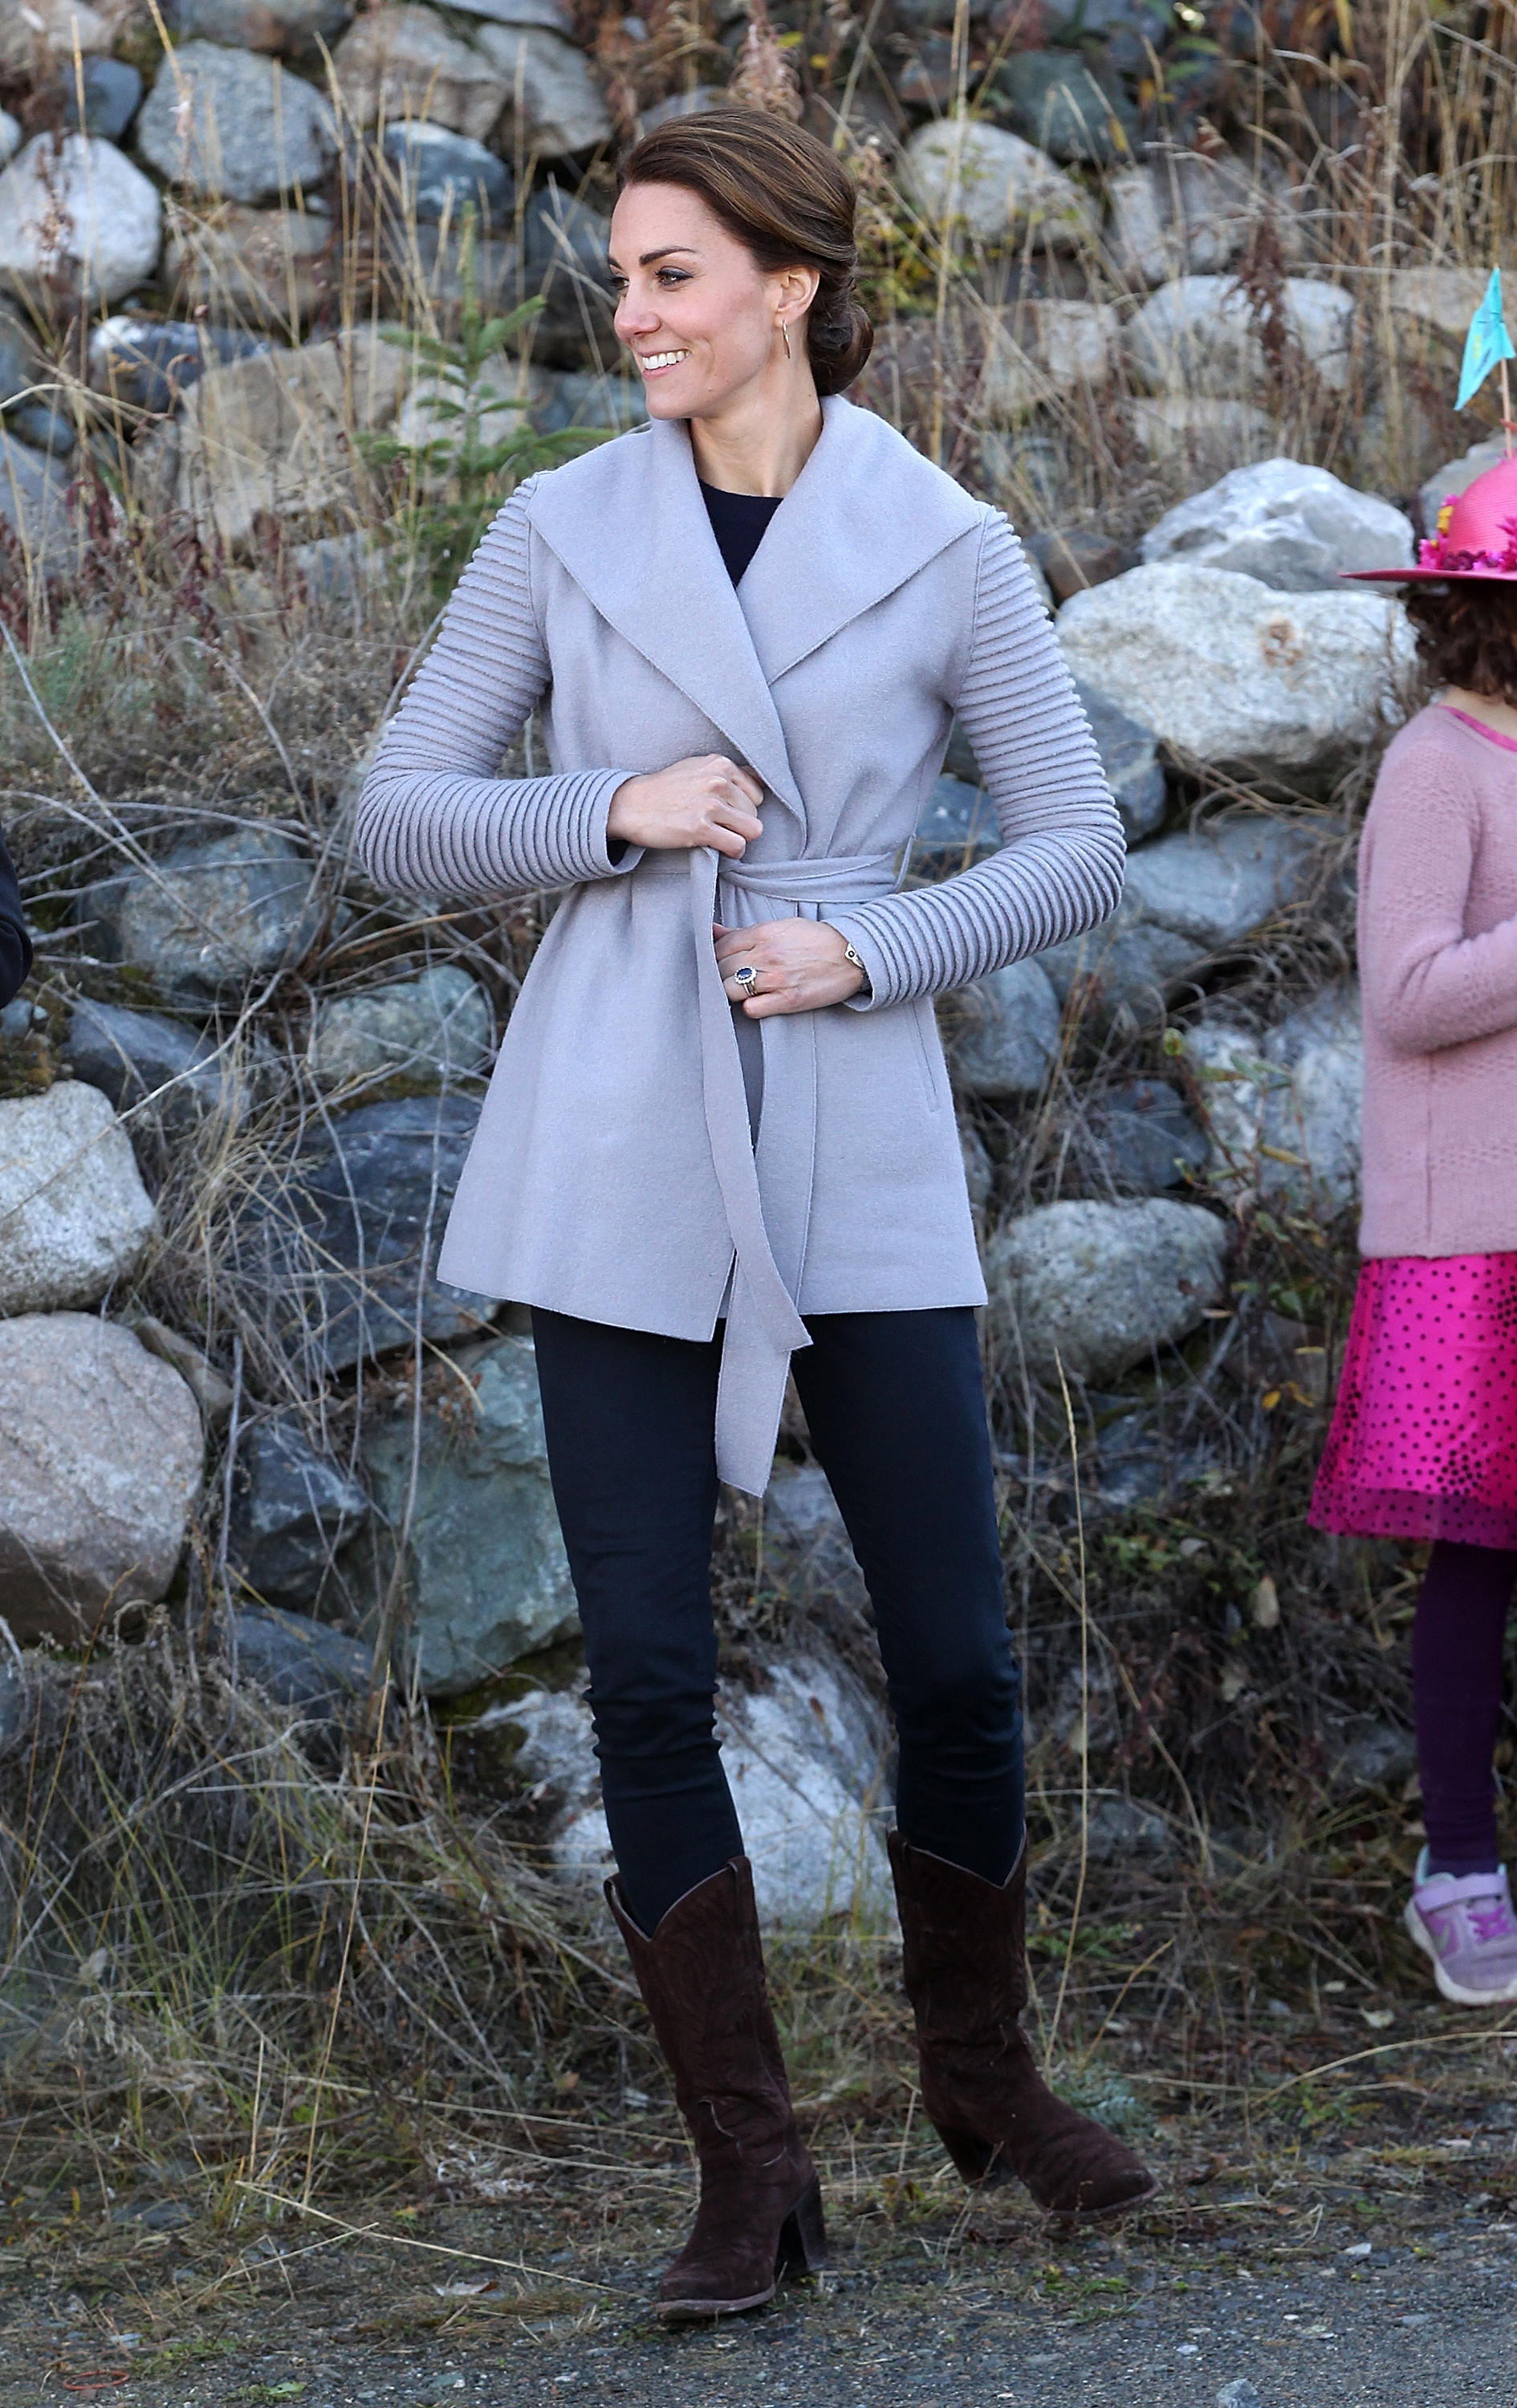 Catherine, Duchess of Cambridge, visits Carcross during the Royal Tour of Canada on Sept. 28, 2016.